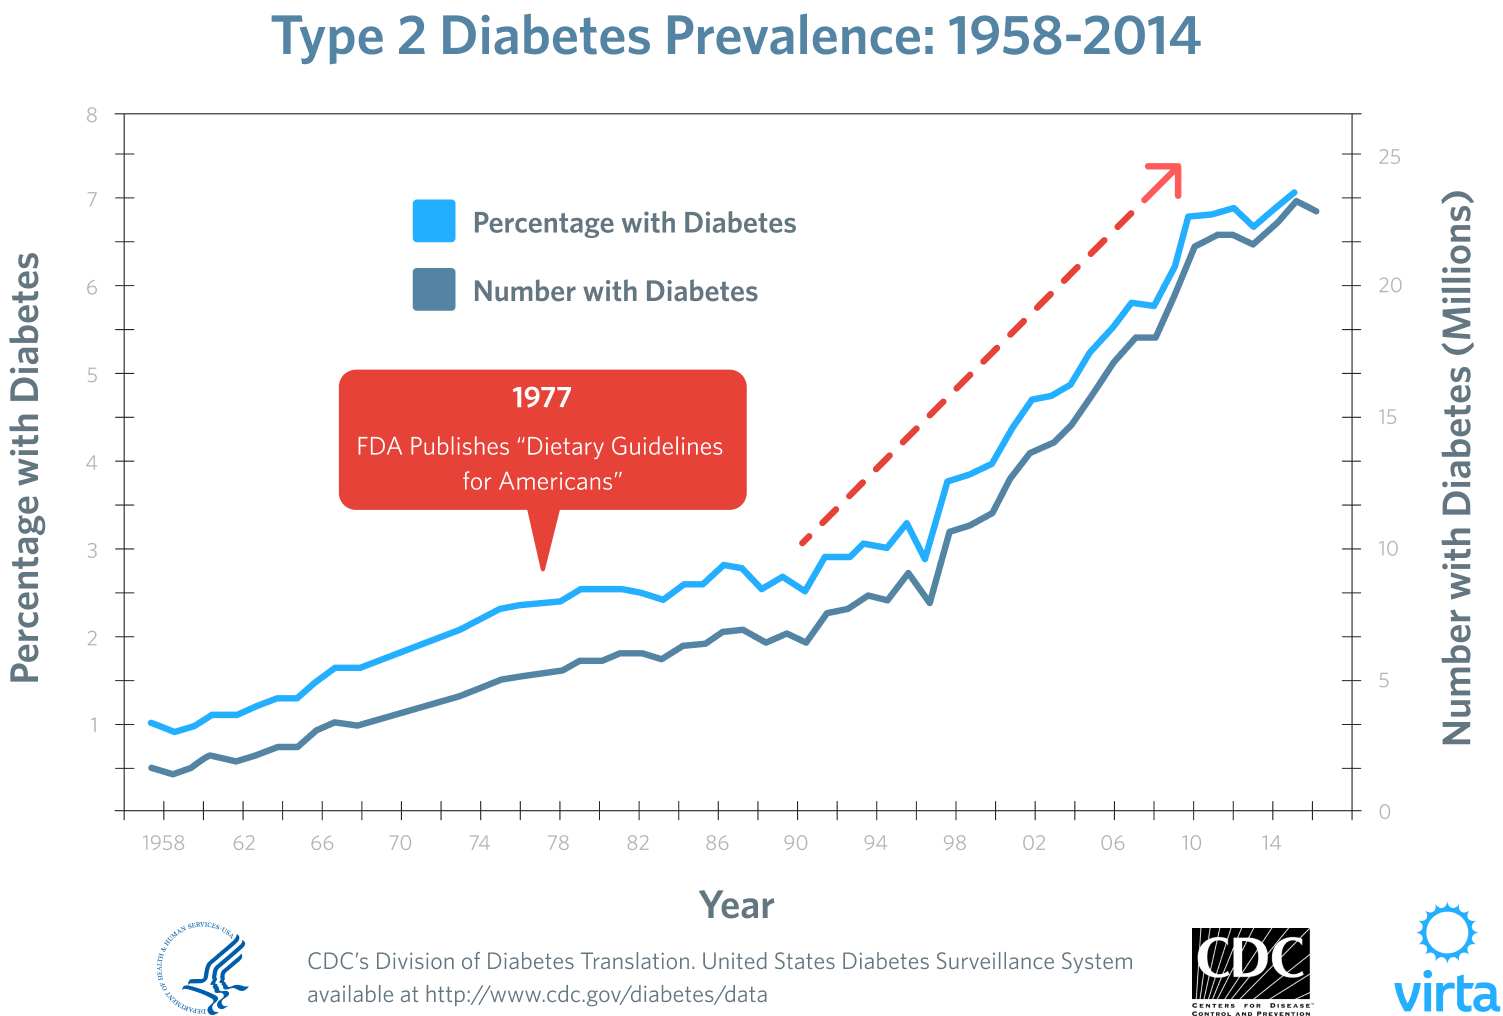 Reversing Diabetes 101 With Dr Sarah Hallberg The Truth About Carbs Blood Sugar And Reversing Type 2 Diabetes